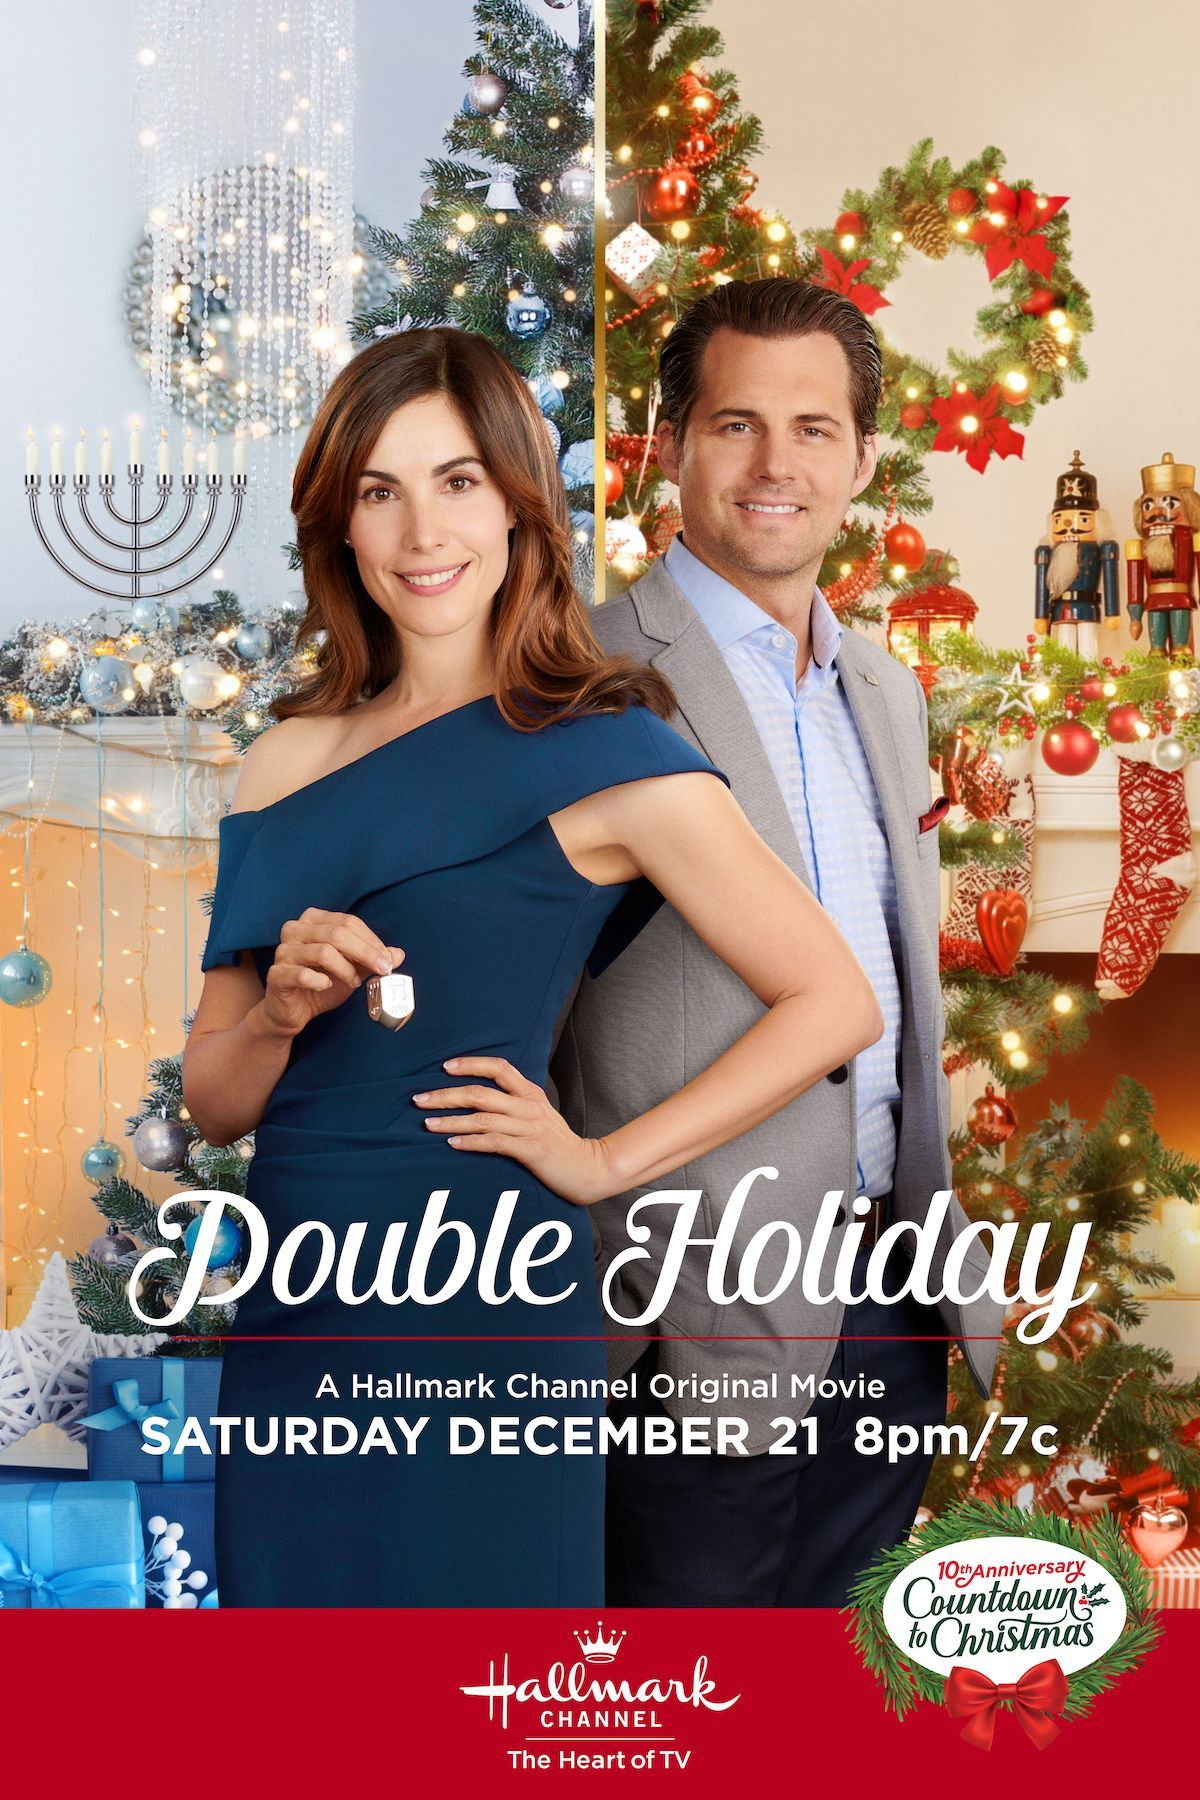 Double Holiday Celebrates Christmas And Hanukkah And Romance Carly Pope Hallmark Channel Christmas Movies Christmas Movies On Tv Hallmark Christmas Movies